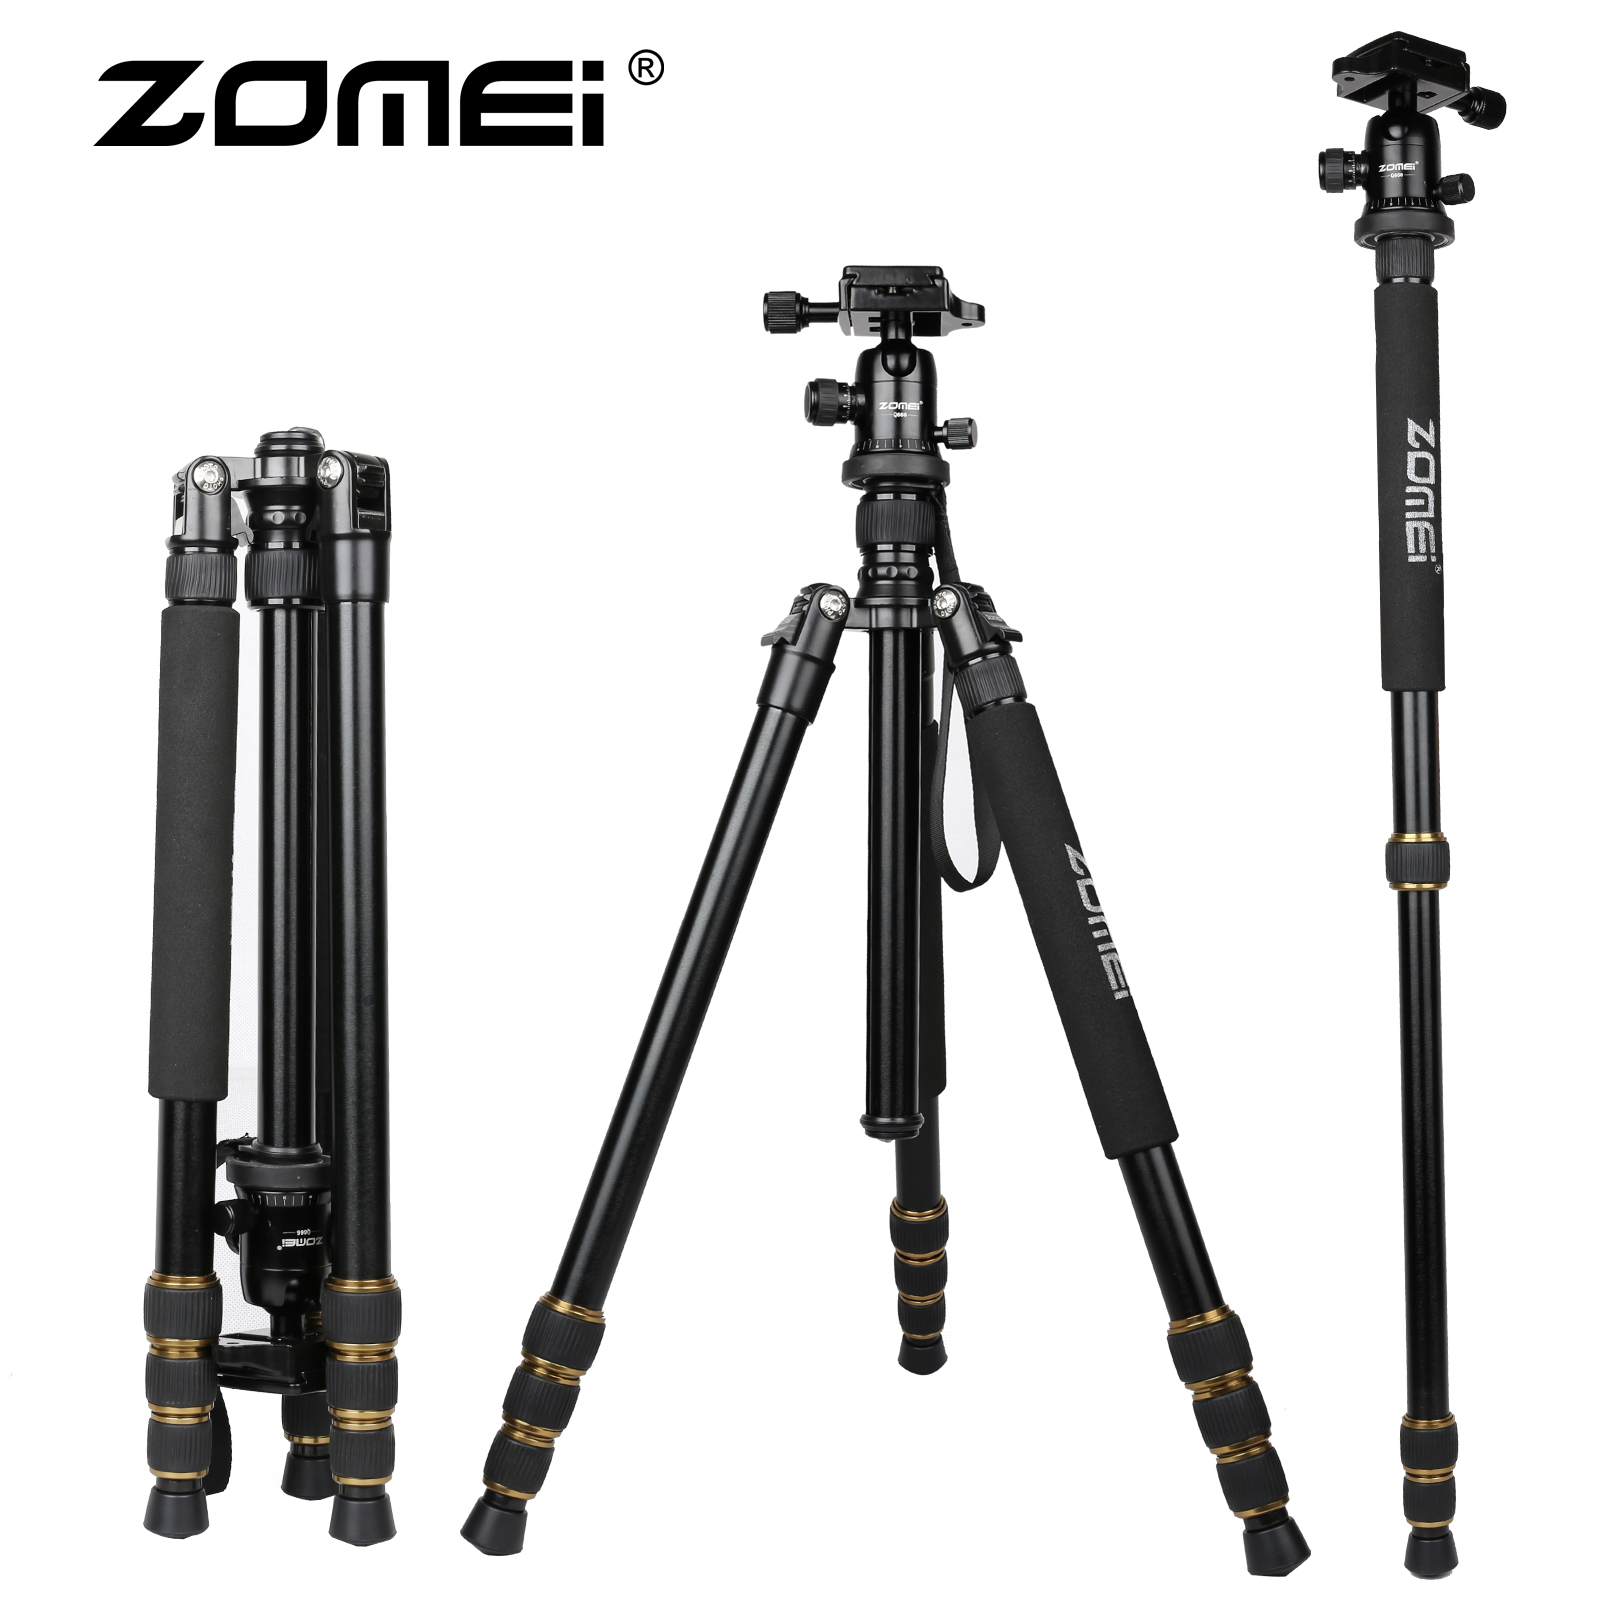 Zomei Q666 Professional Tripod Monopod with Ball Head Compact Travel Tripods Portable Camera Stand for SLR DSLR Digital Camera q666 zomei professional magnesium alloy digital camera traveling tripod monopod for digital slr dslr camera